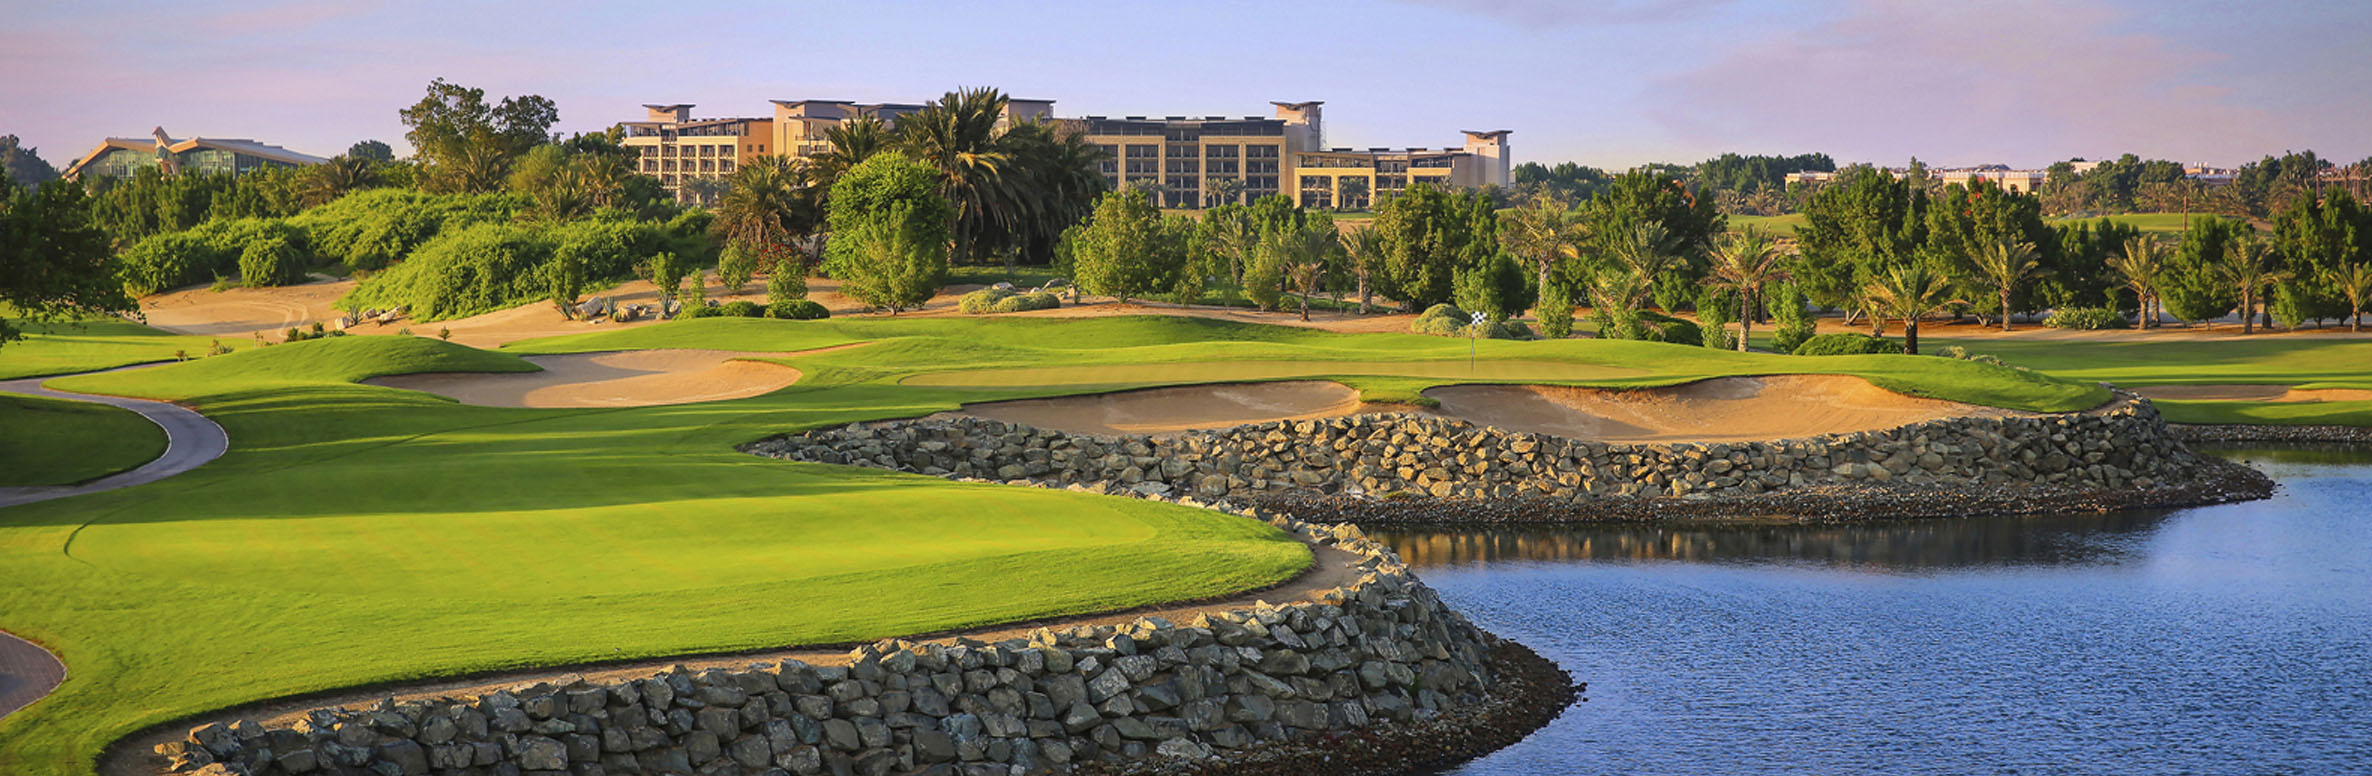 Abu Dhabi Golf Club Championship Course